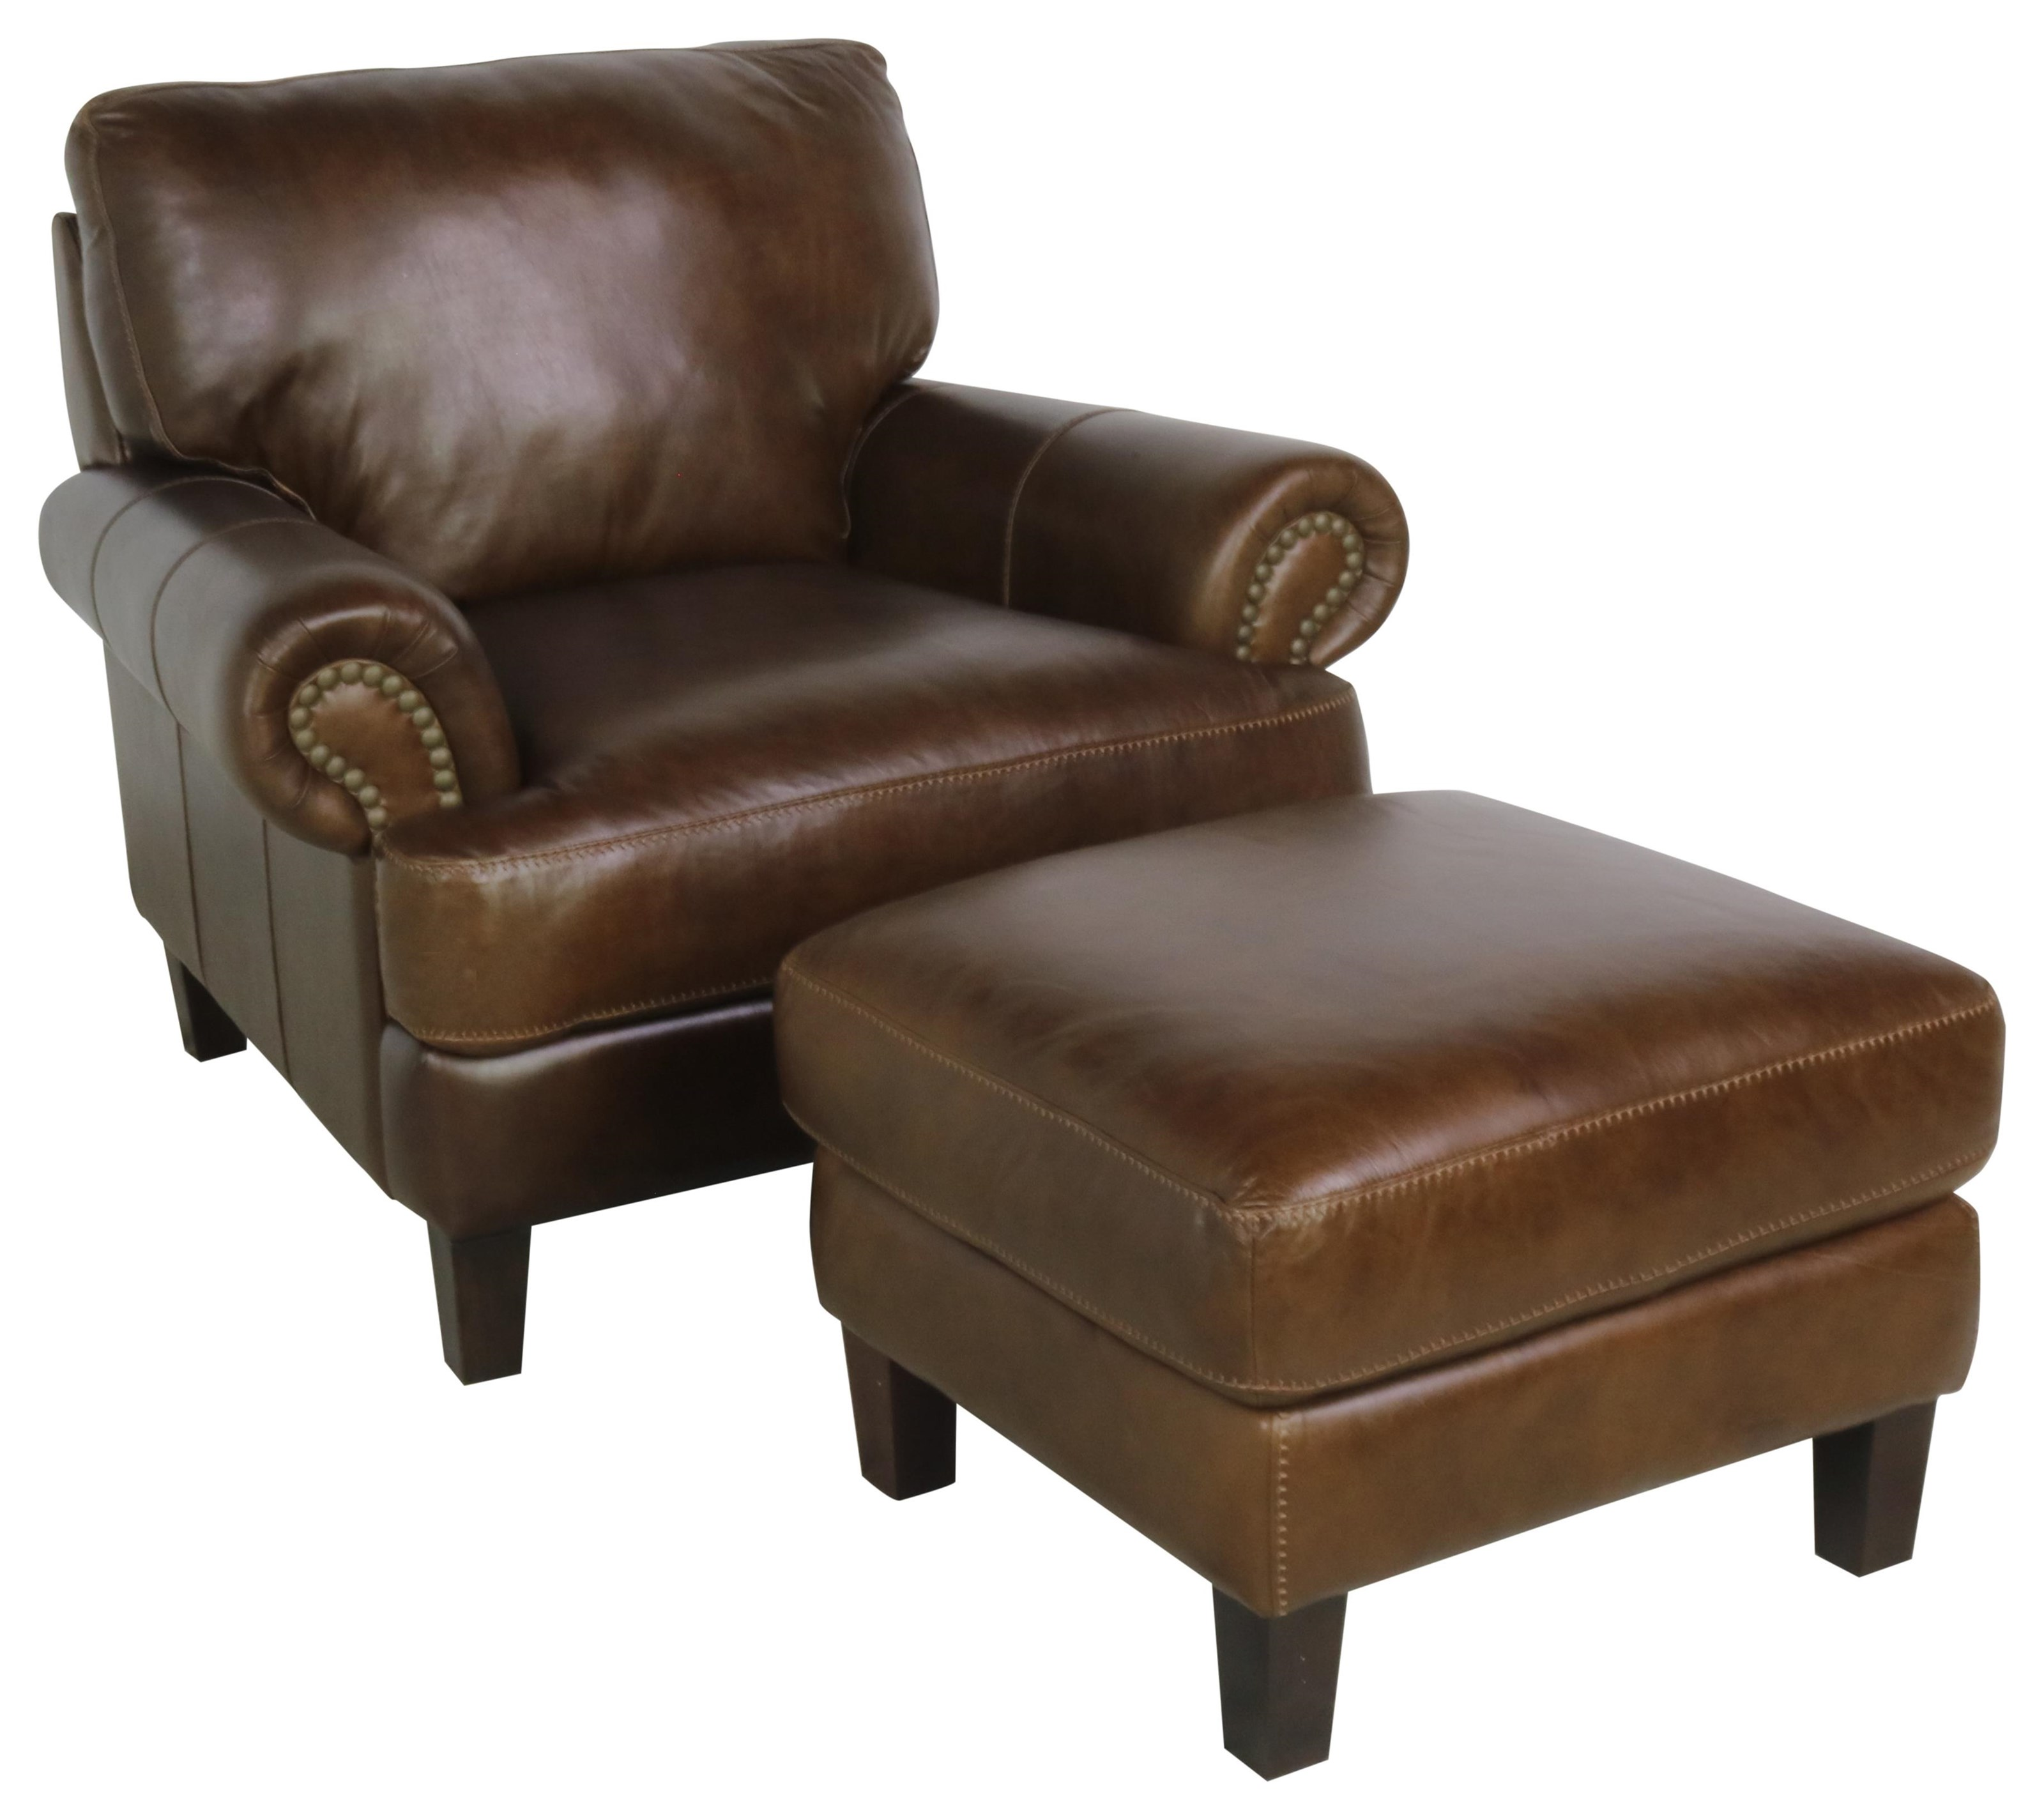 7386 Italian Leather Chair & Ottoman by Giovanni Leather at Sprintz Furniture